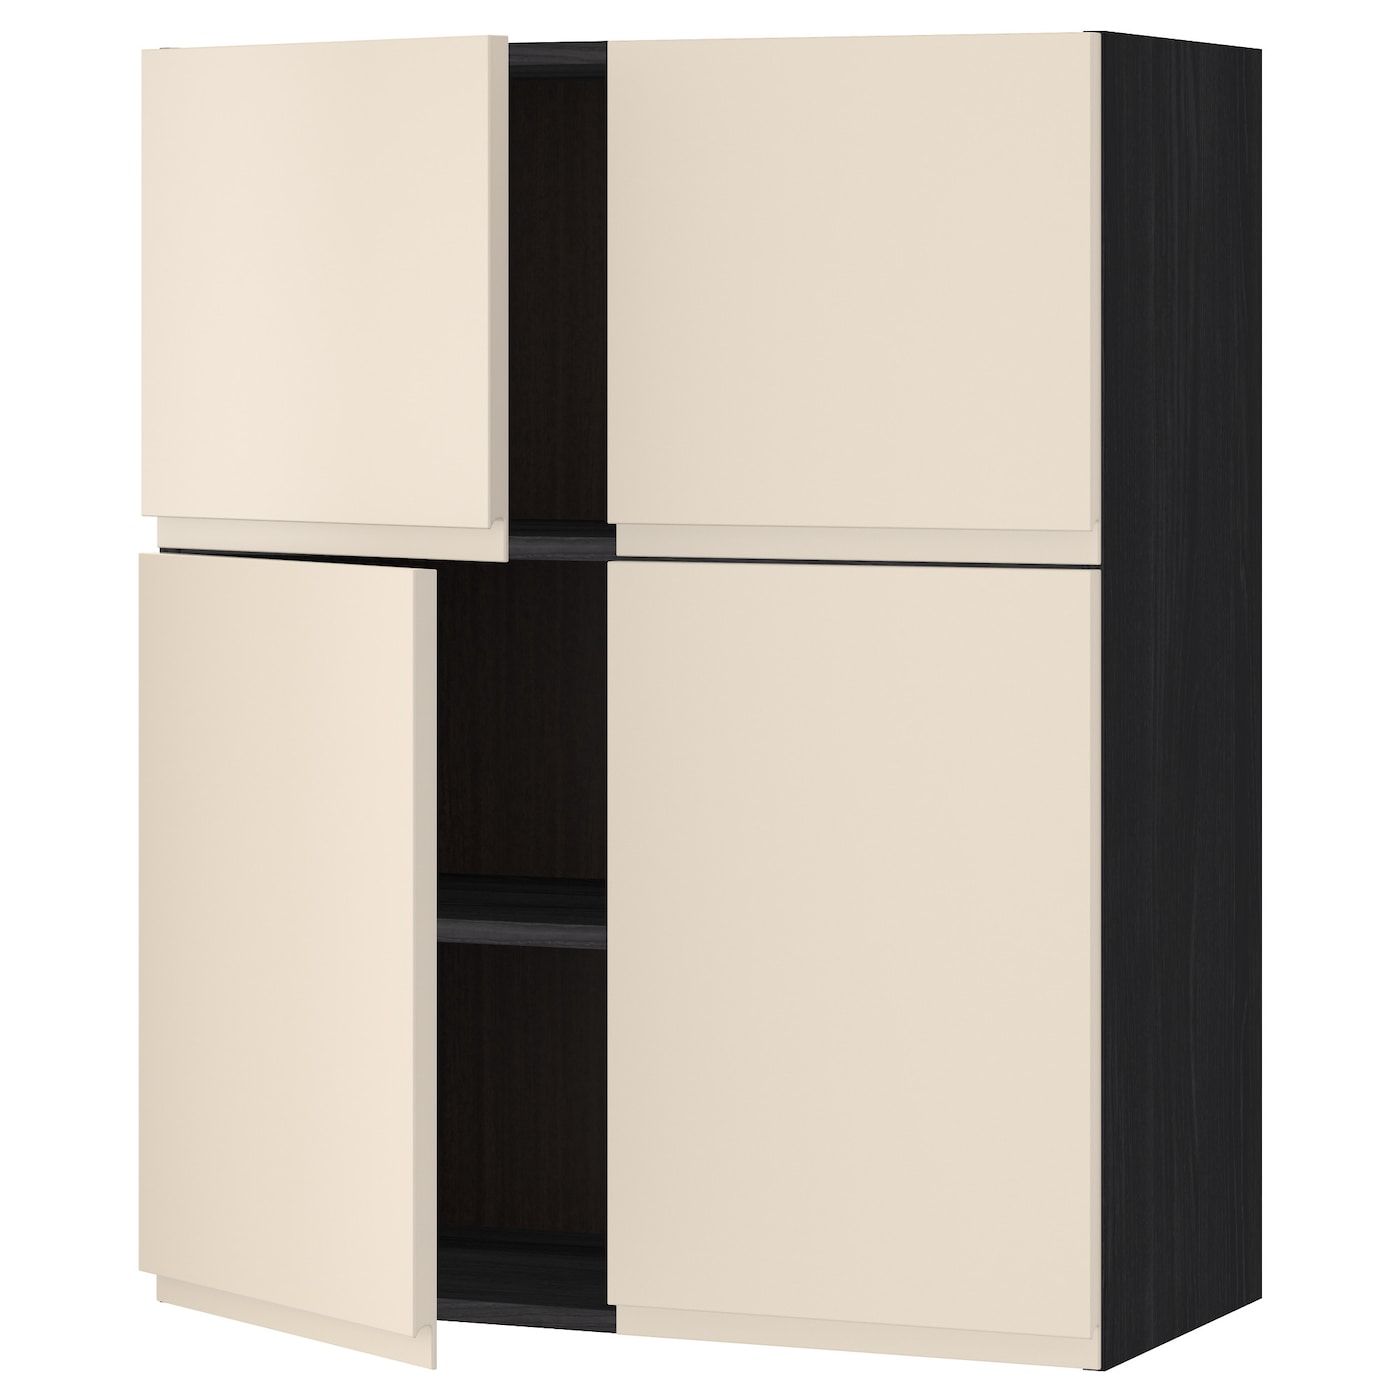 Dark Beige Kitchen Cabinets: METOD Wall Cabinet With Shelves/4 Doors Black/voxtorp